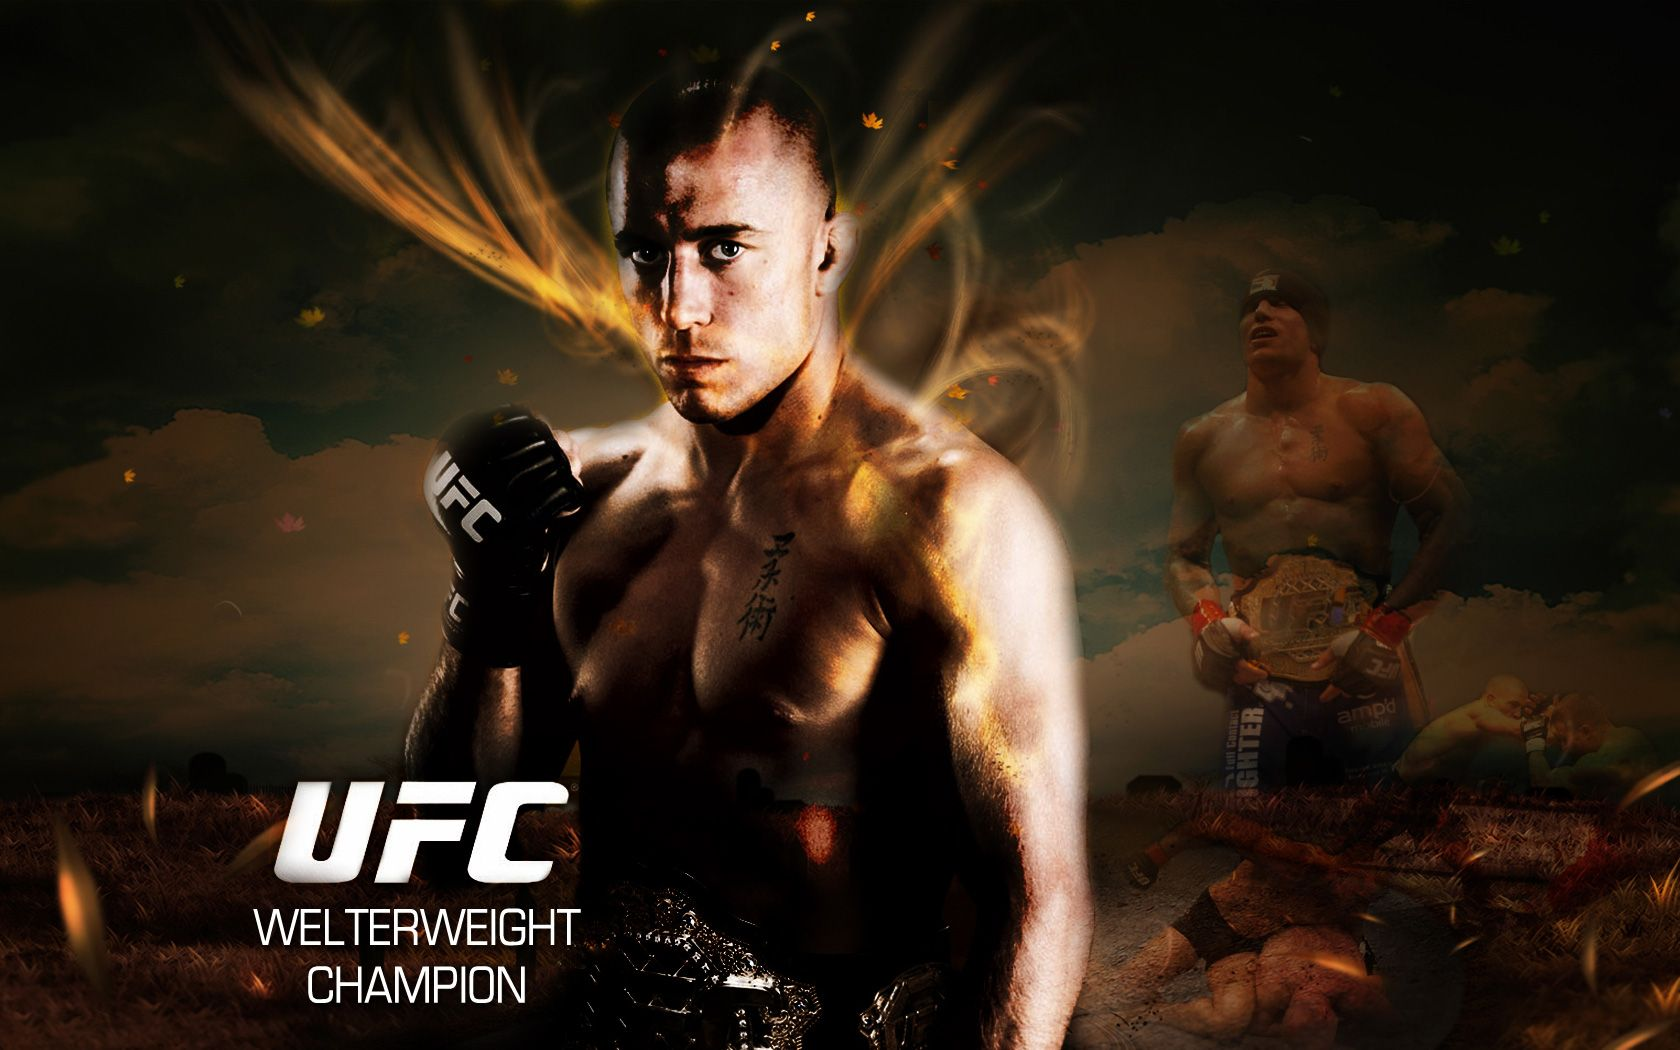 Anybody need a wallpaper? - Page 2 - Outside the UFC - UFC® Fight ...